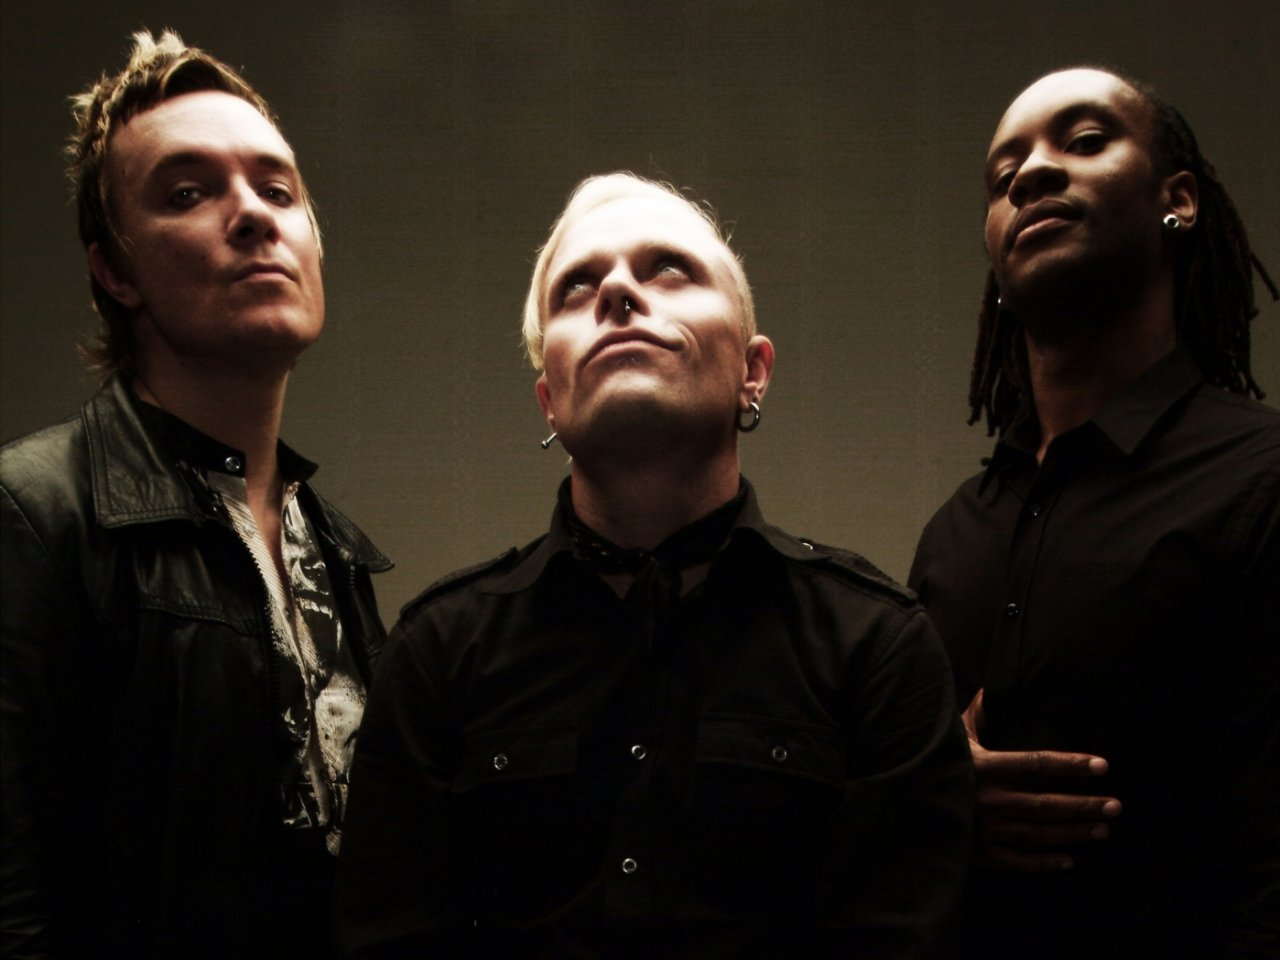 The prodigy wild frontier official video перевод - cc7d